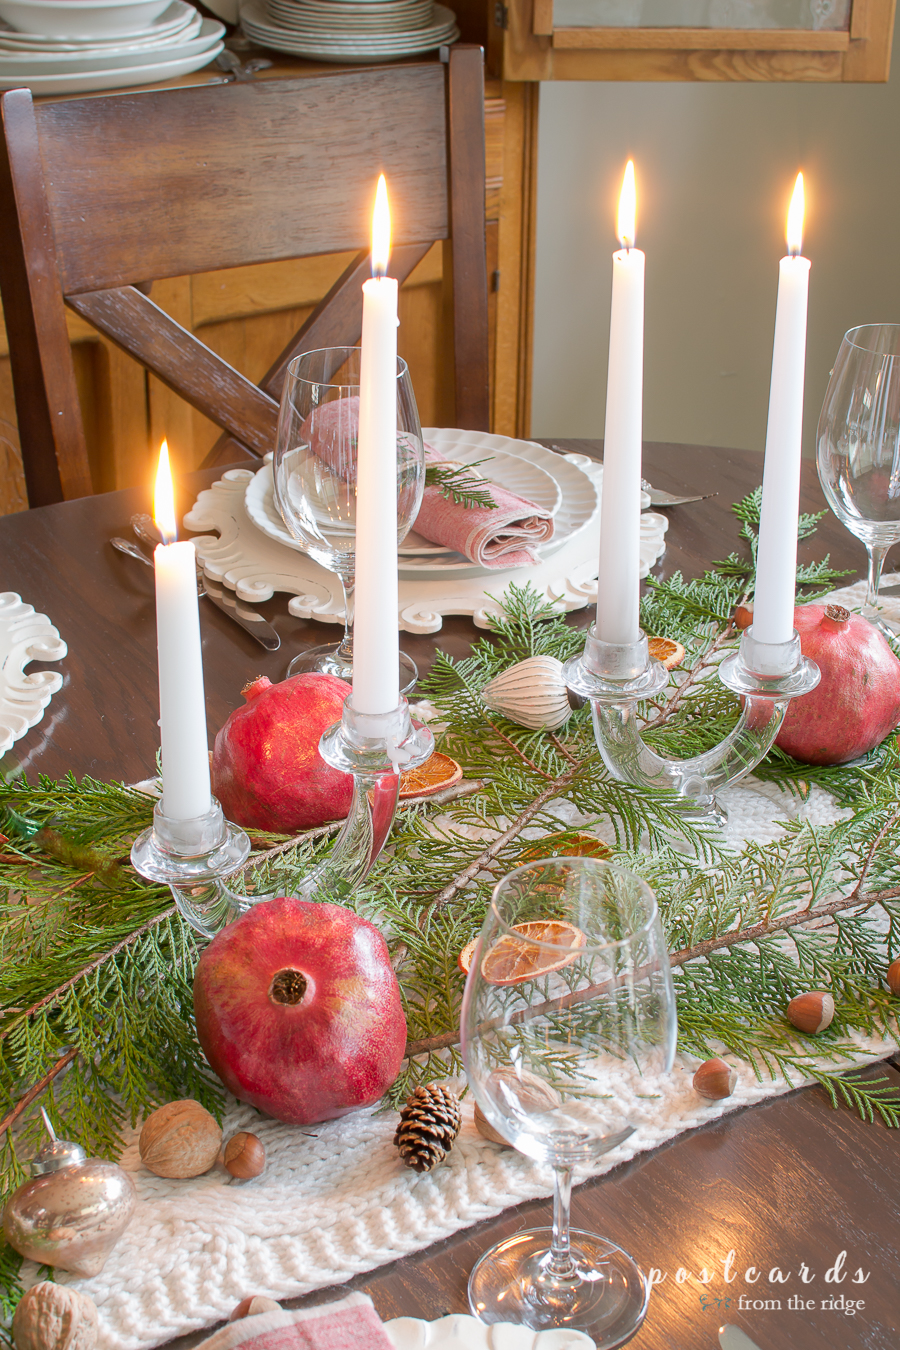 Christmas centerpiece with pomegranates, cypress, nuts and orange slices